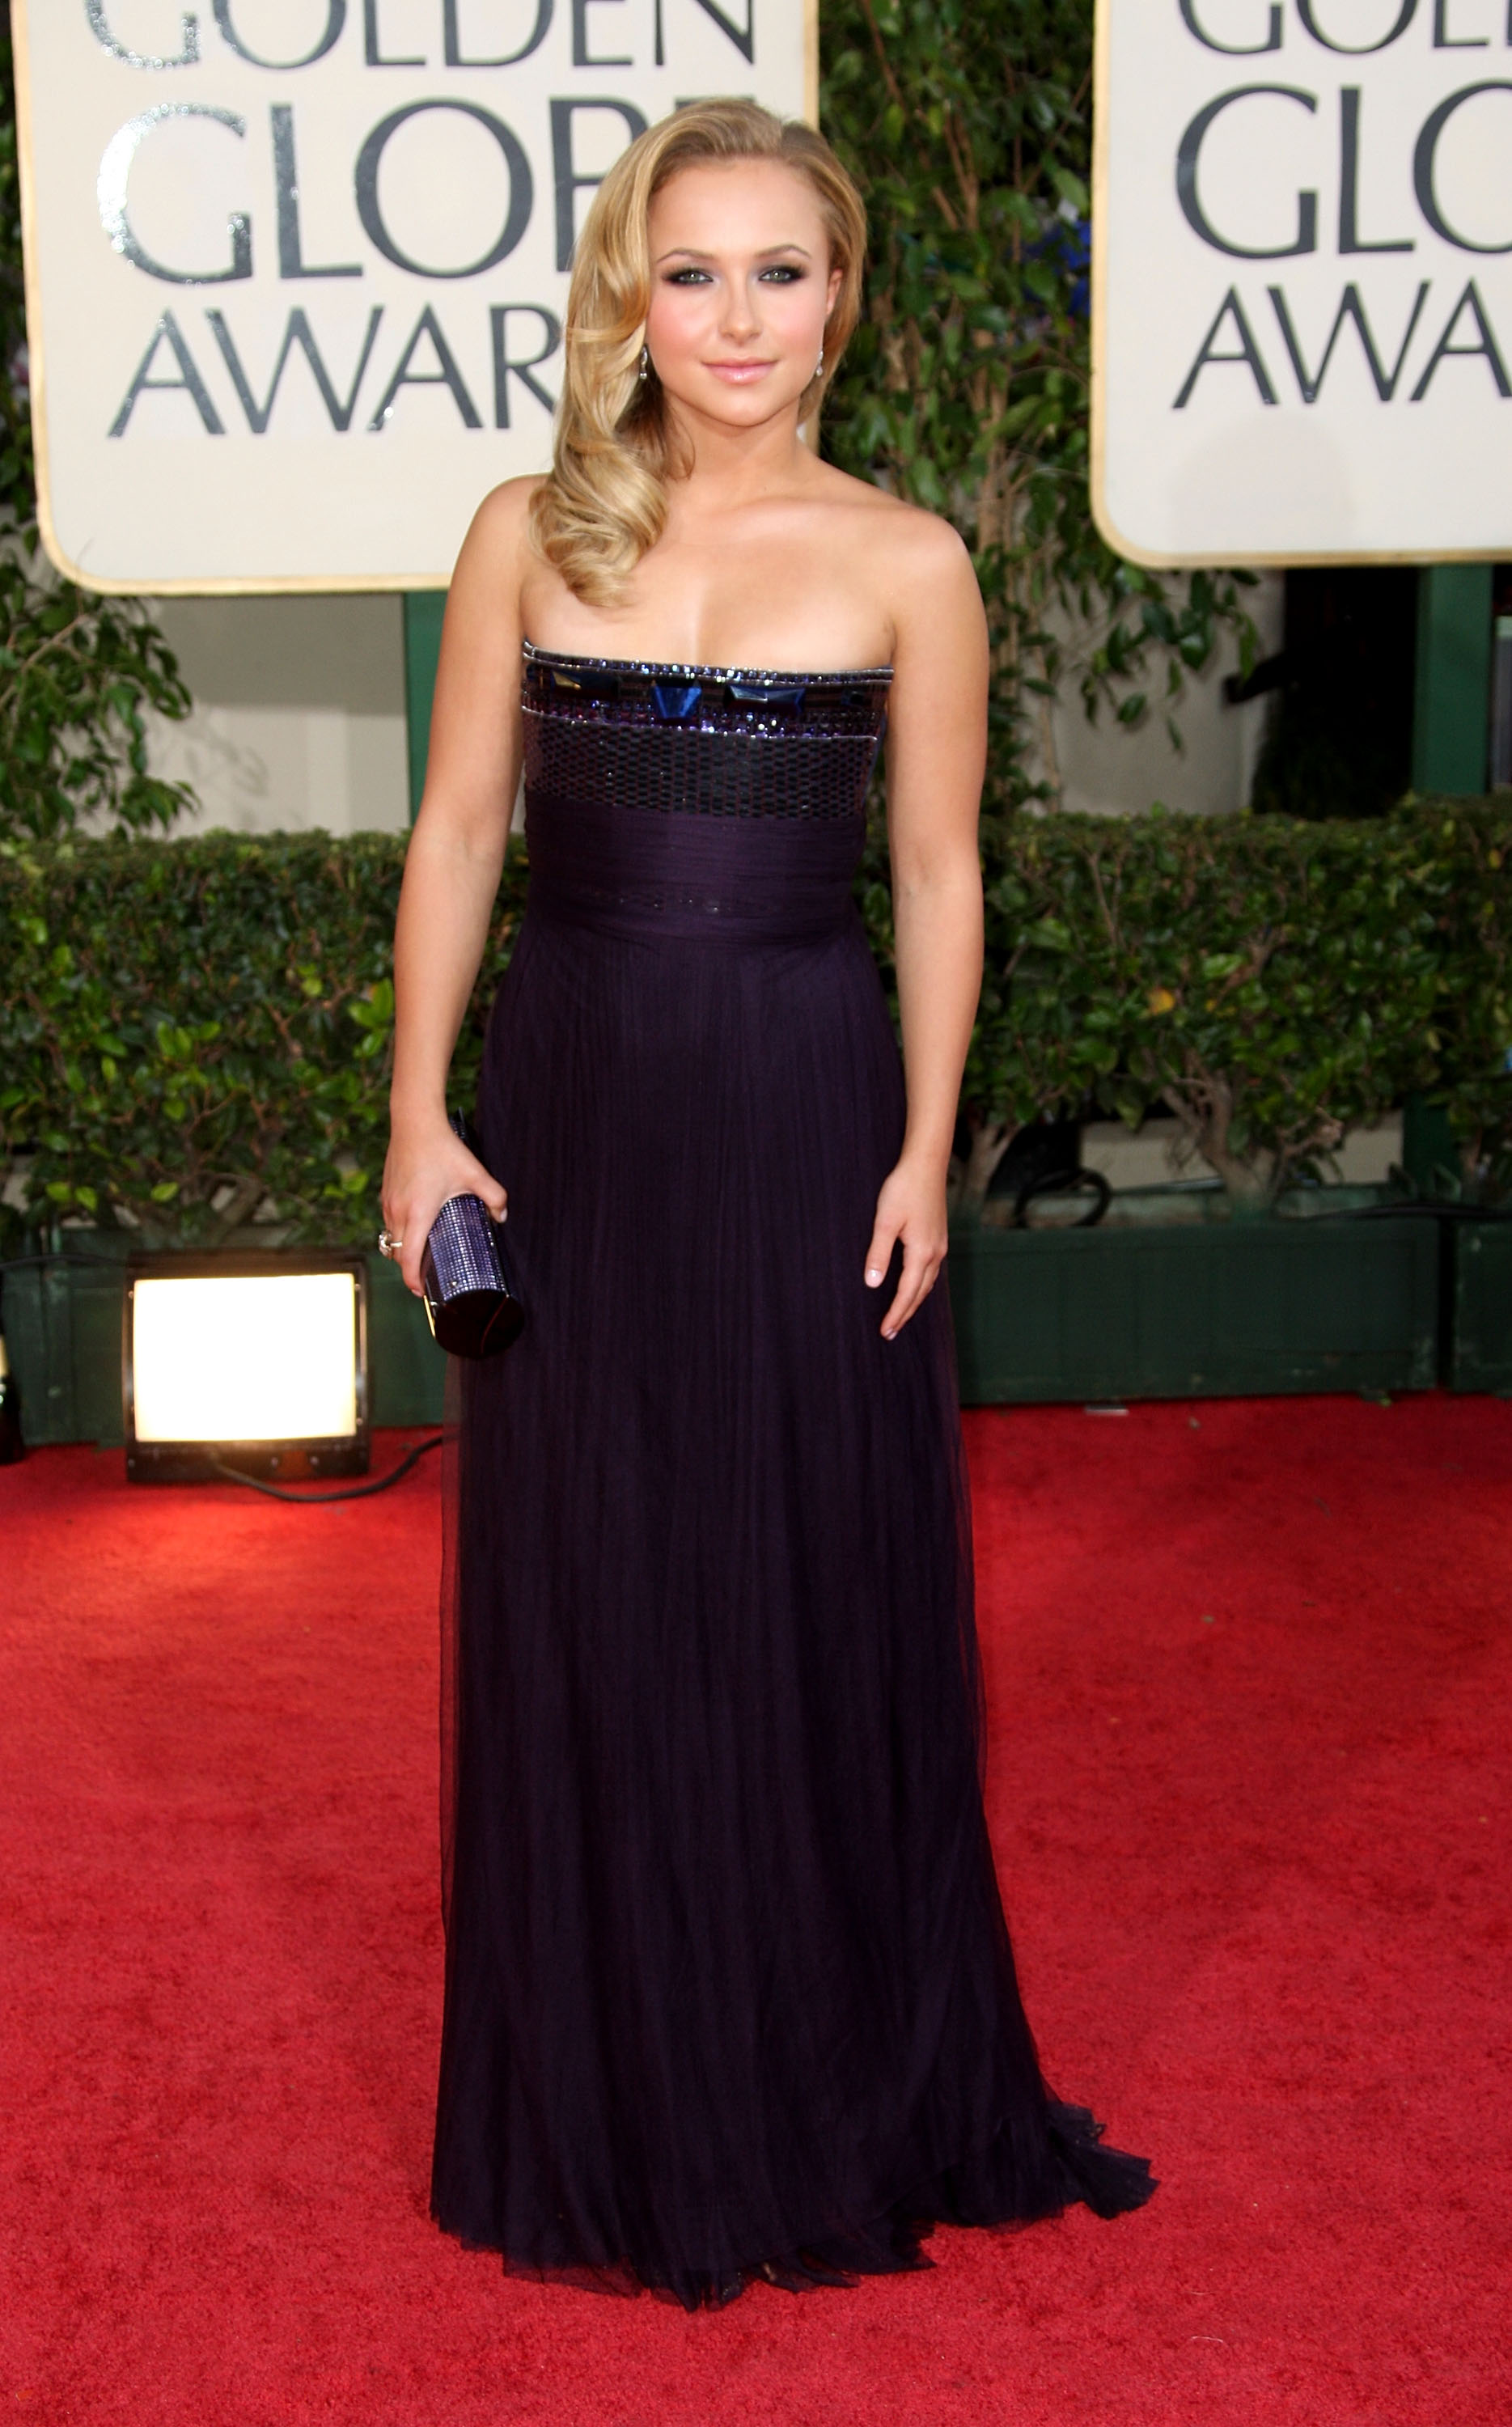 22564_Celebutopia-Hayden_Panettiere_arrives_at_the_66th_Annual_Golden_Globe_Awards-03_122_181lo.jpg